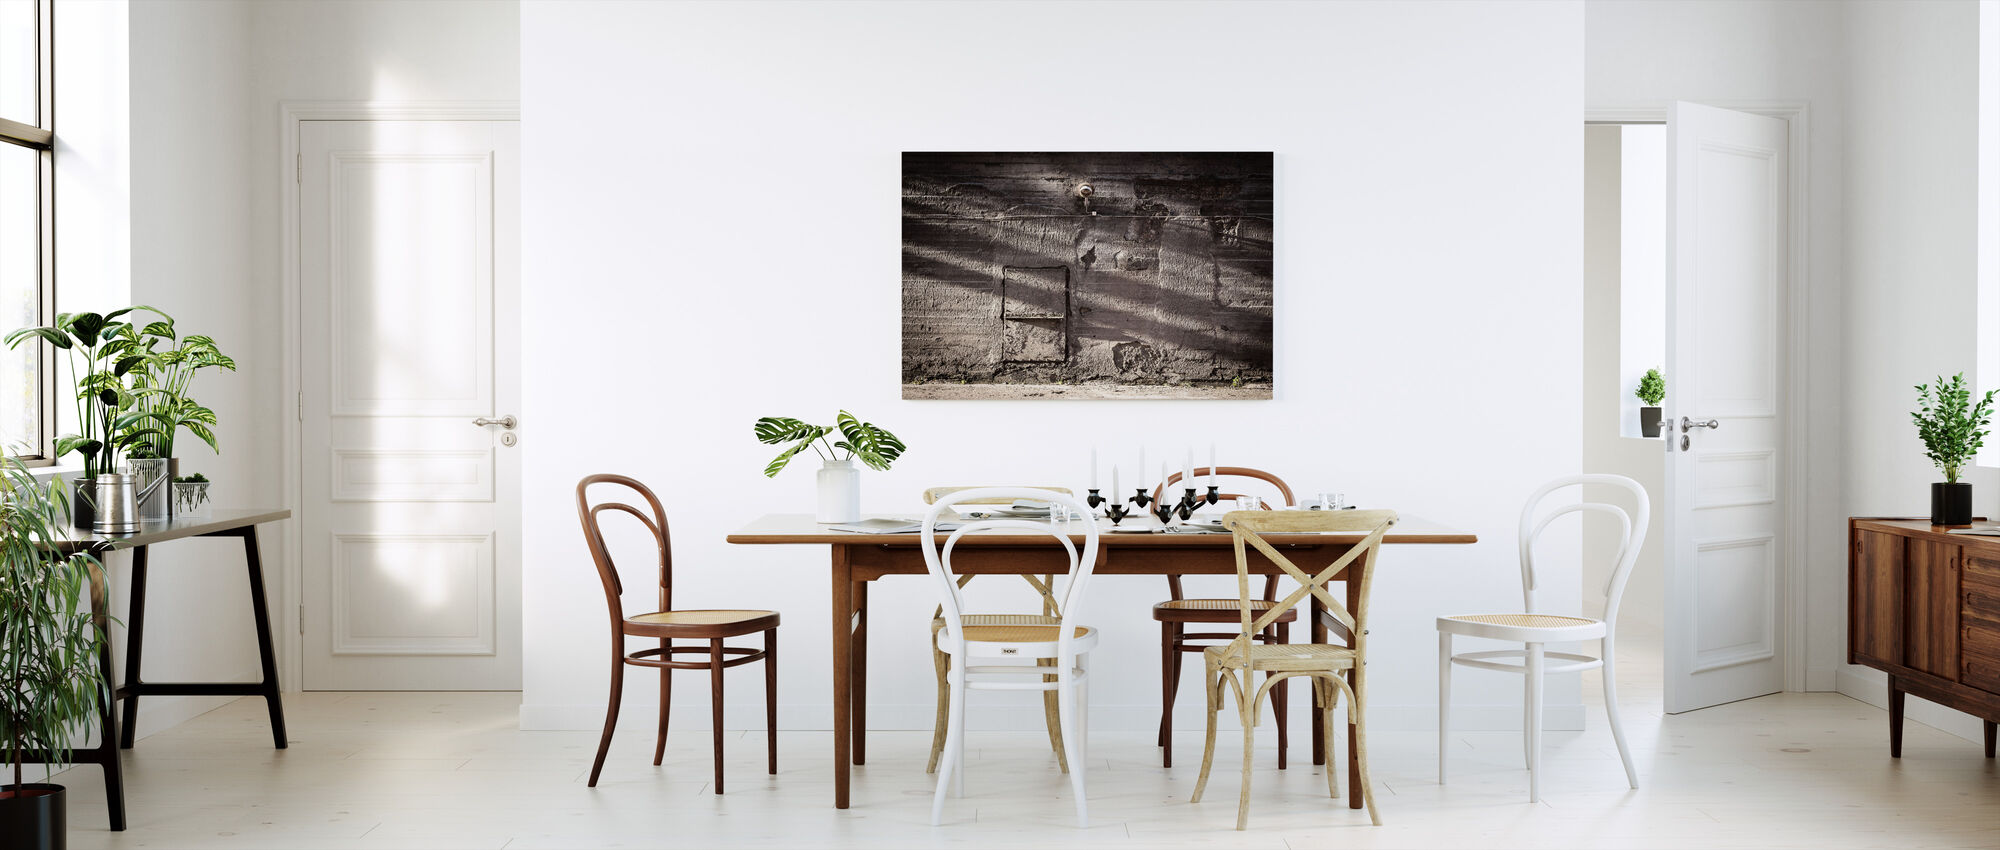 Concrete Wall with Shadows - Canvas print - Kitchen